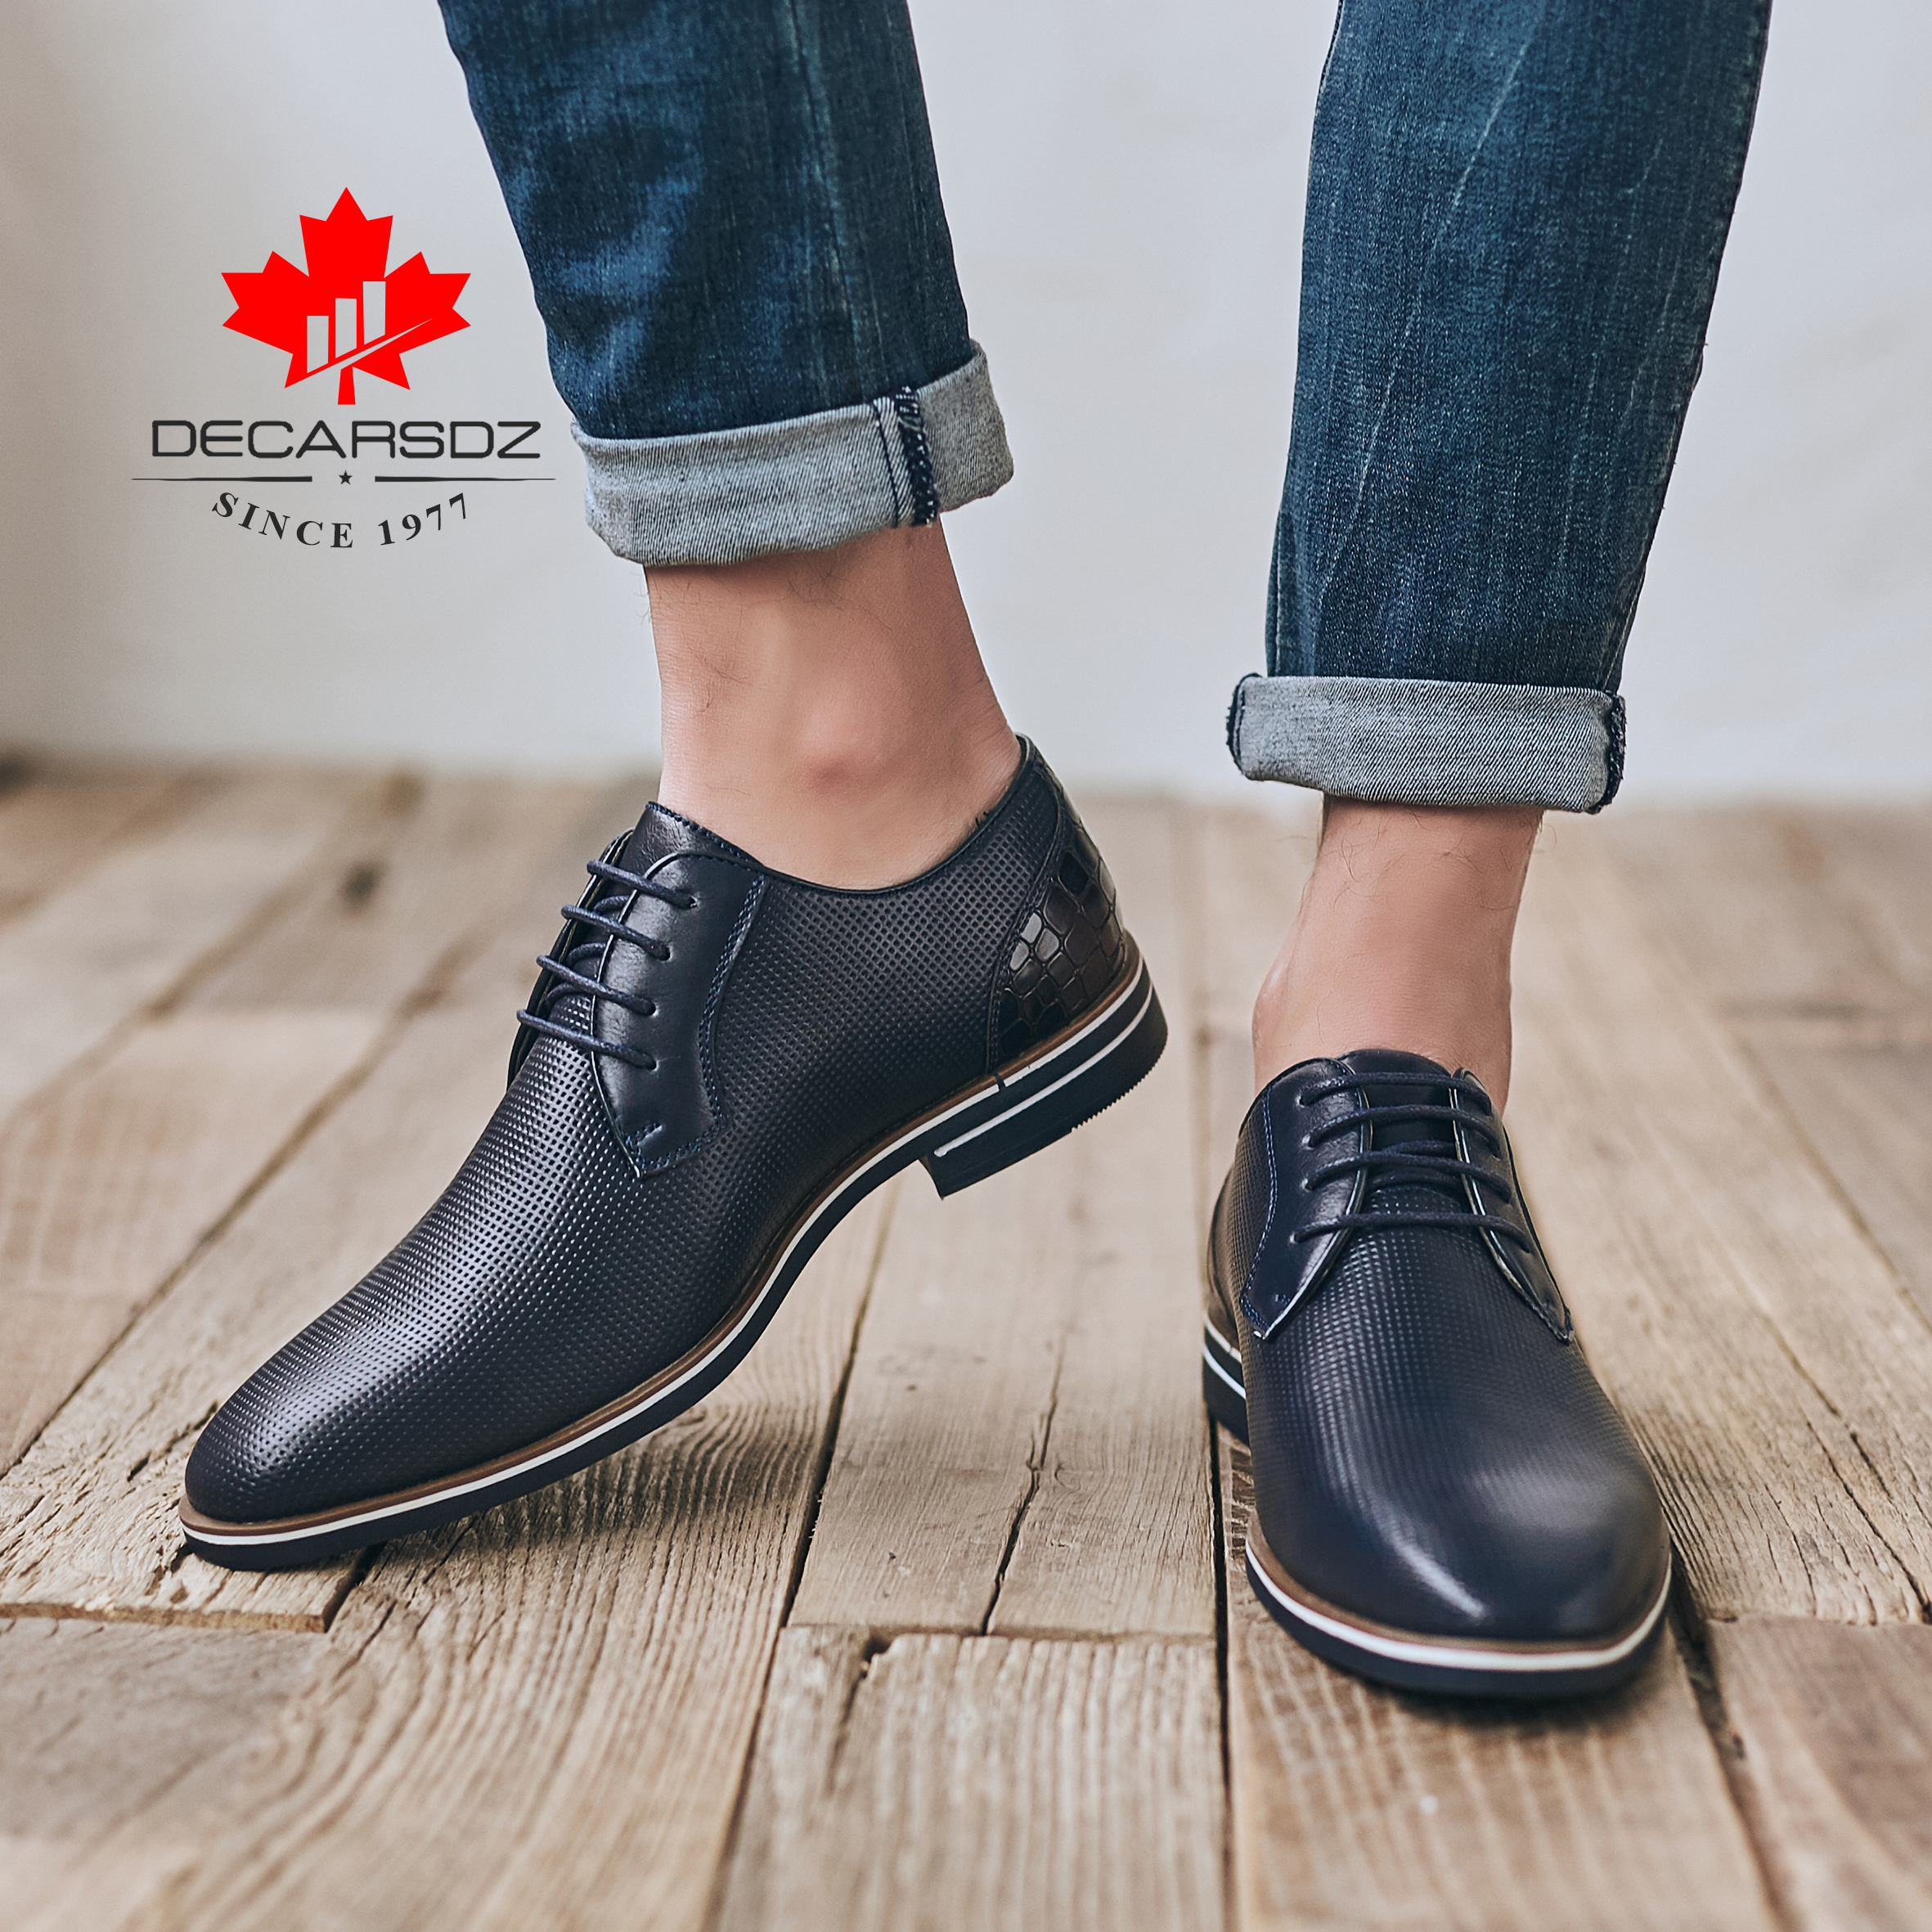 Casual leather shoes men,DECARSDZ Quality Men shoes,Business casual shoes designed in Paris,Comfortable leather shoes for men